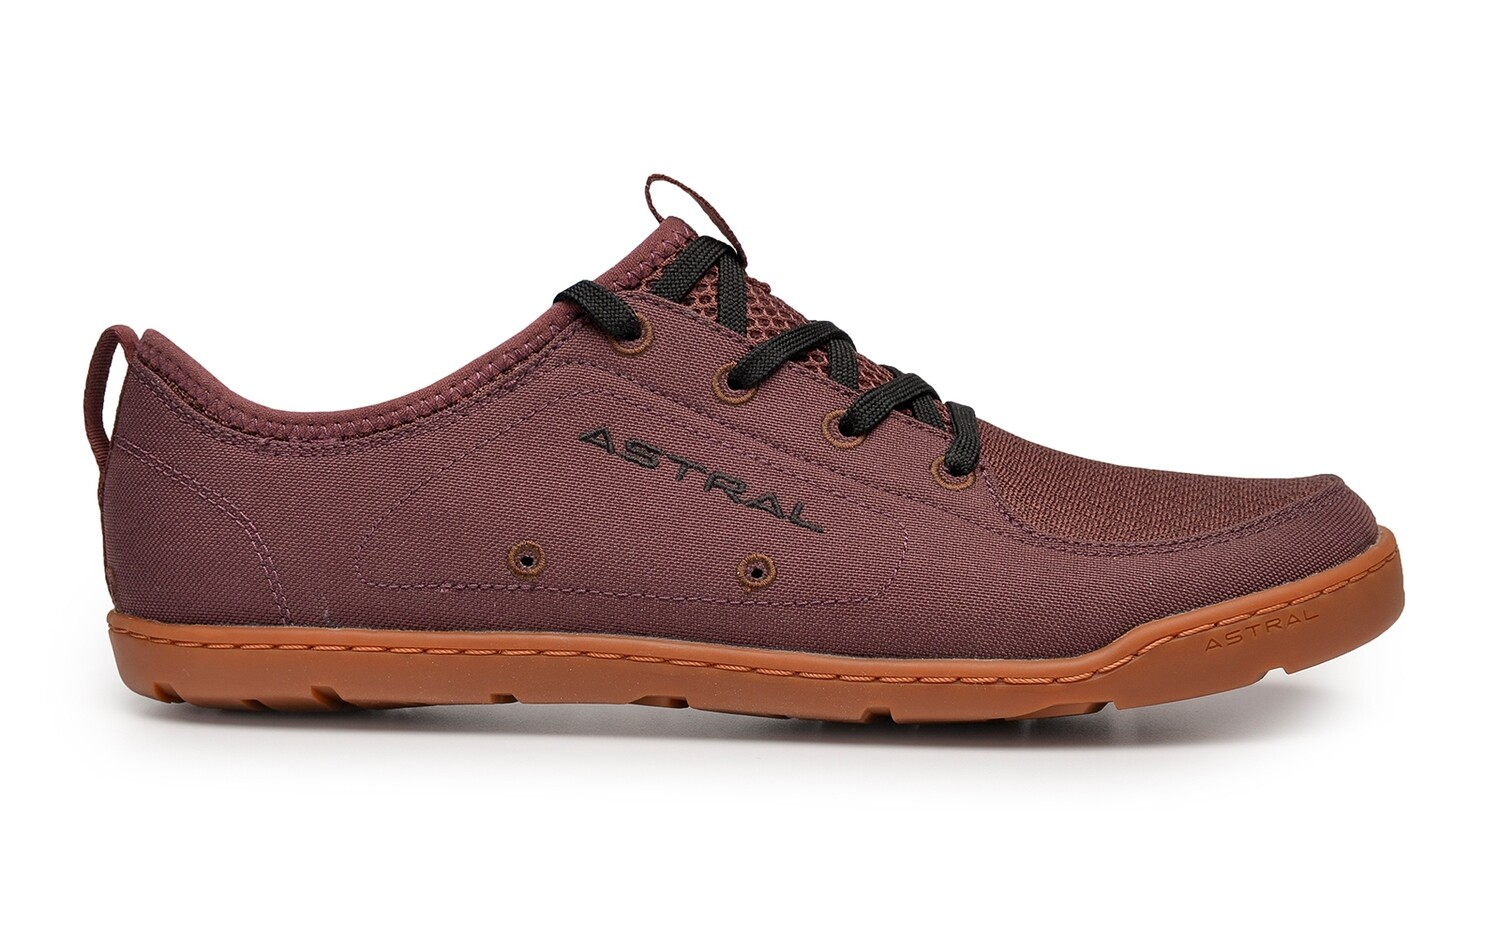 Astral Footwear Loyak Men's Beet Red